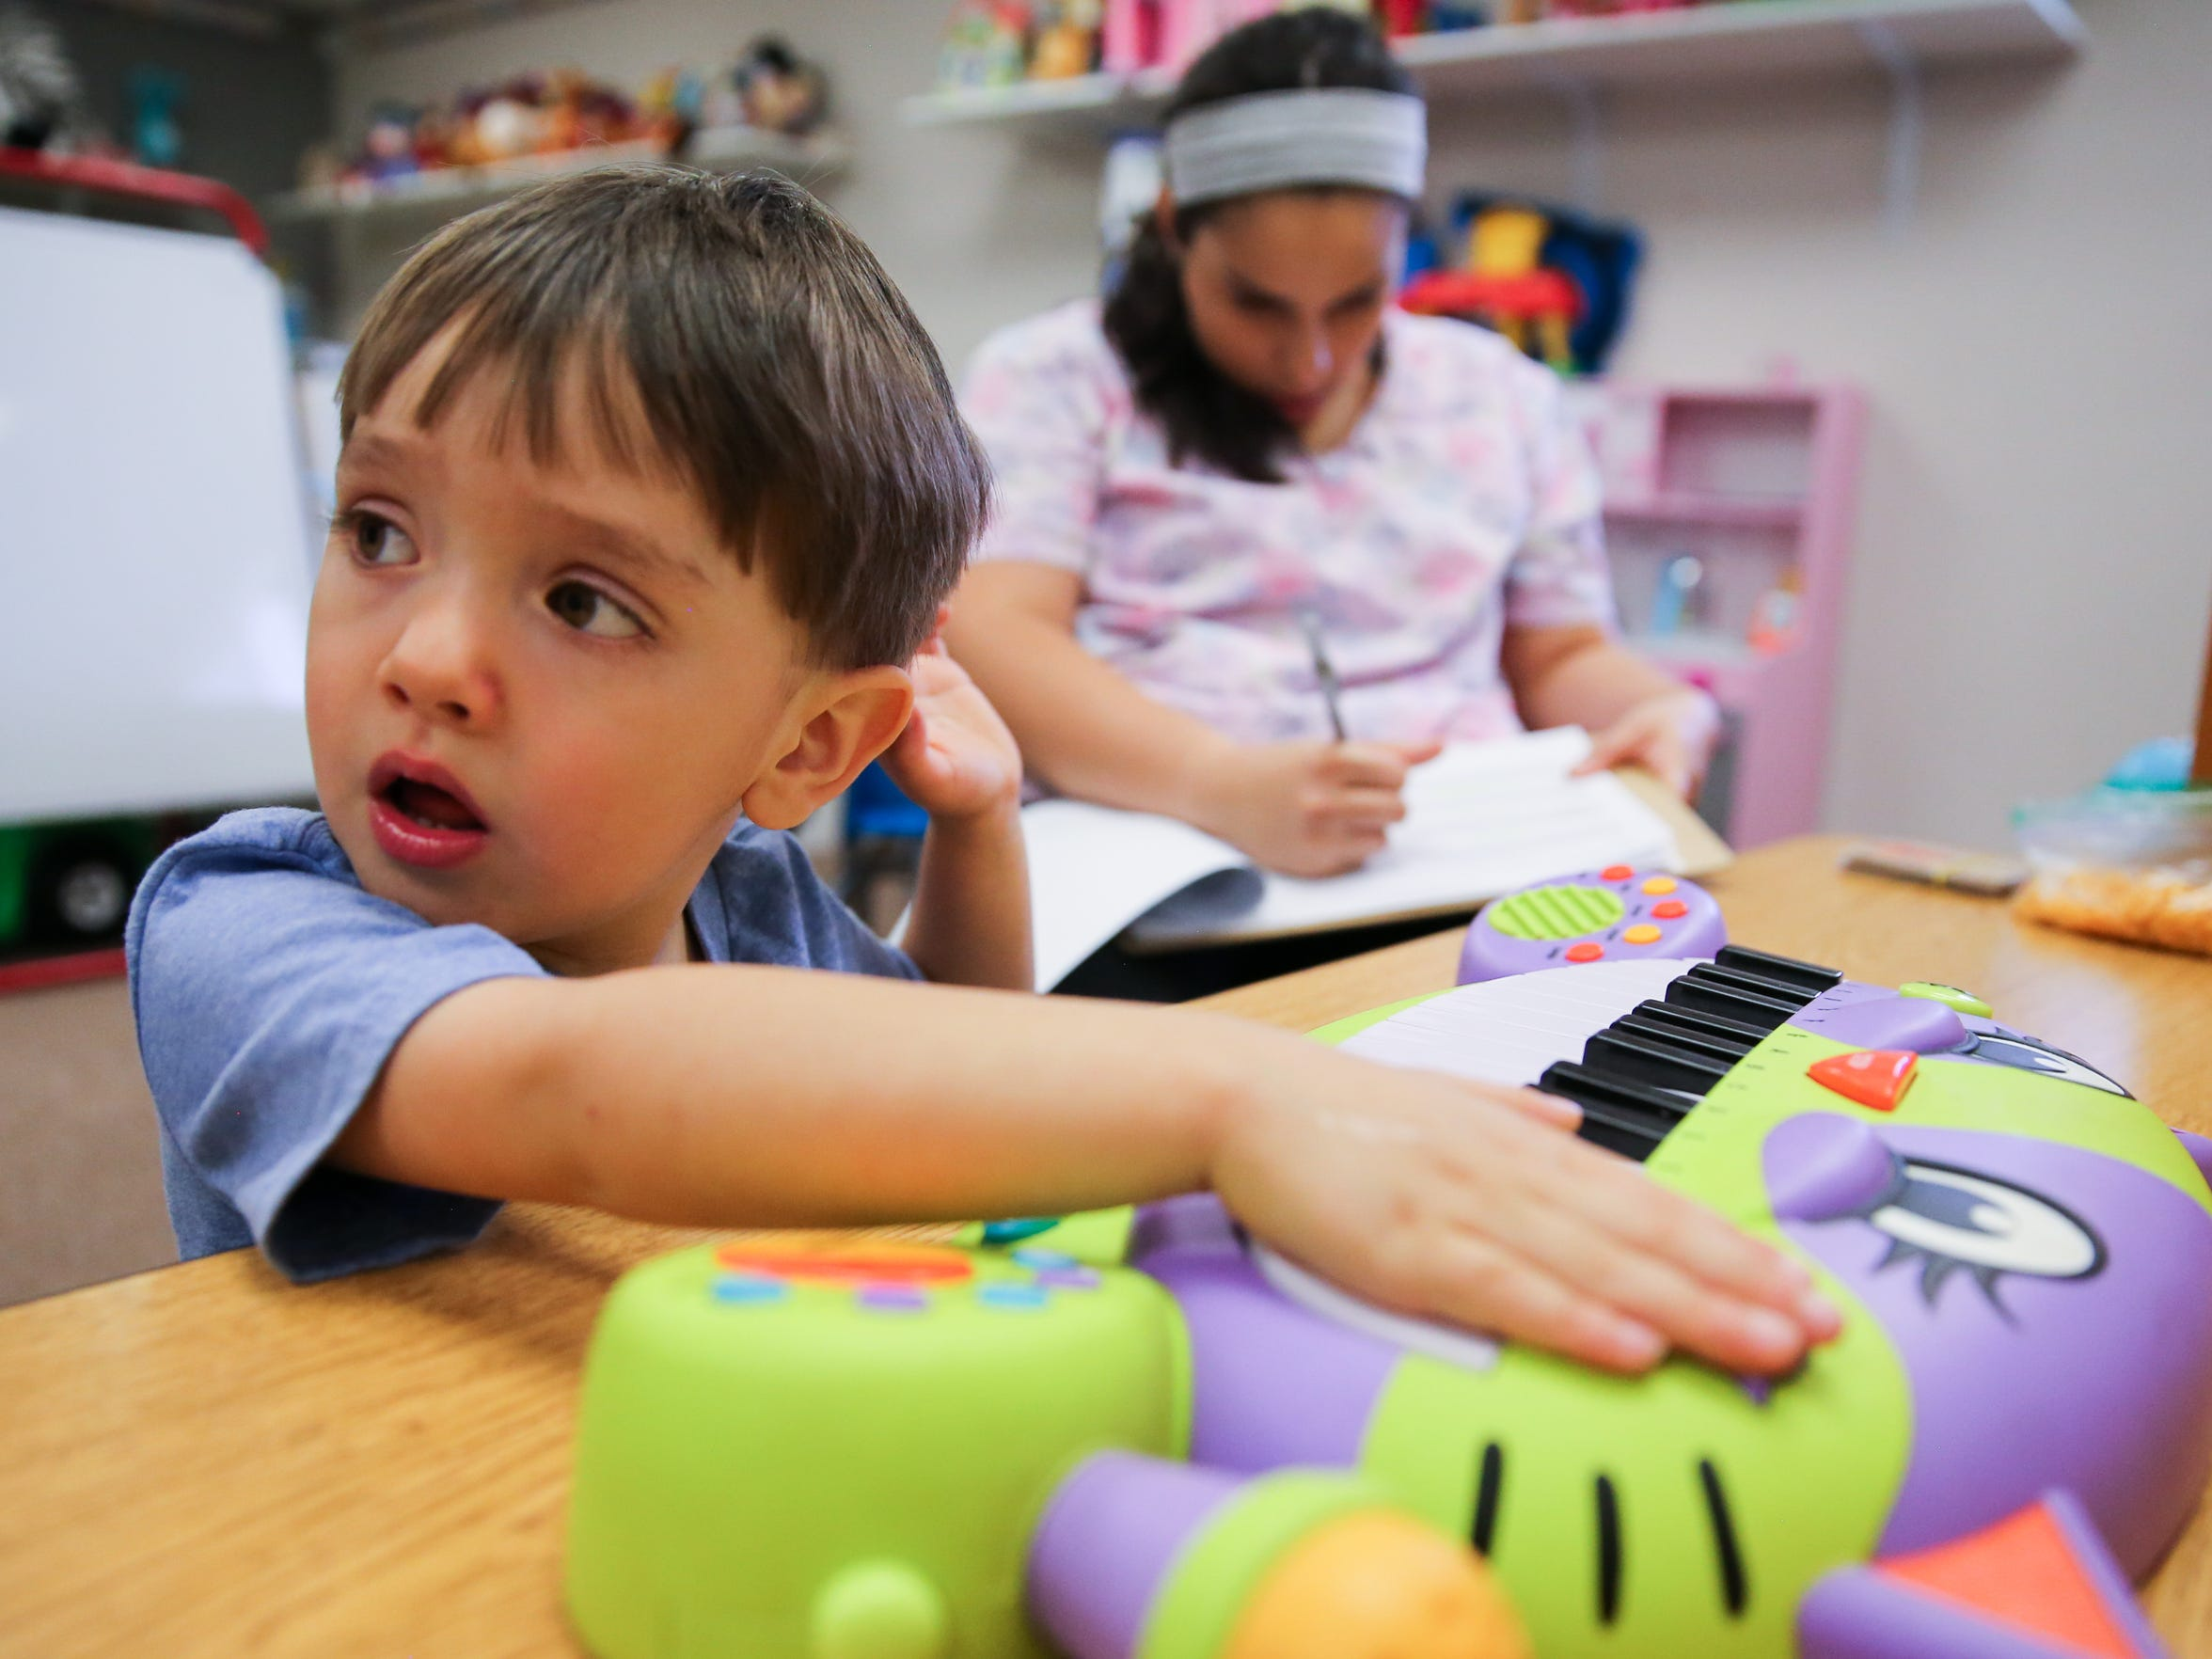 Mykaela Lara, registered behavior technician, makes notes while Aiden Lopez, 3, plays during ABA Therapy at ABC Autism Center for Children through MHMR Services for the Concho Valley.